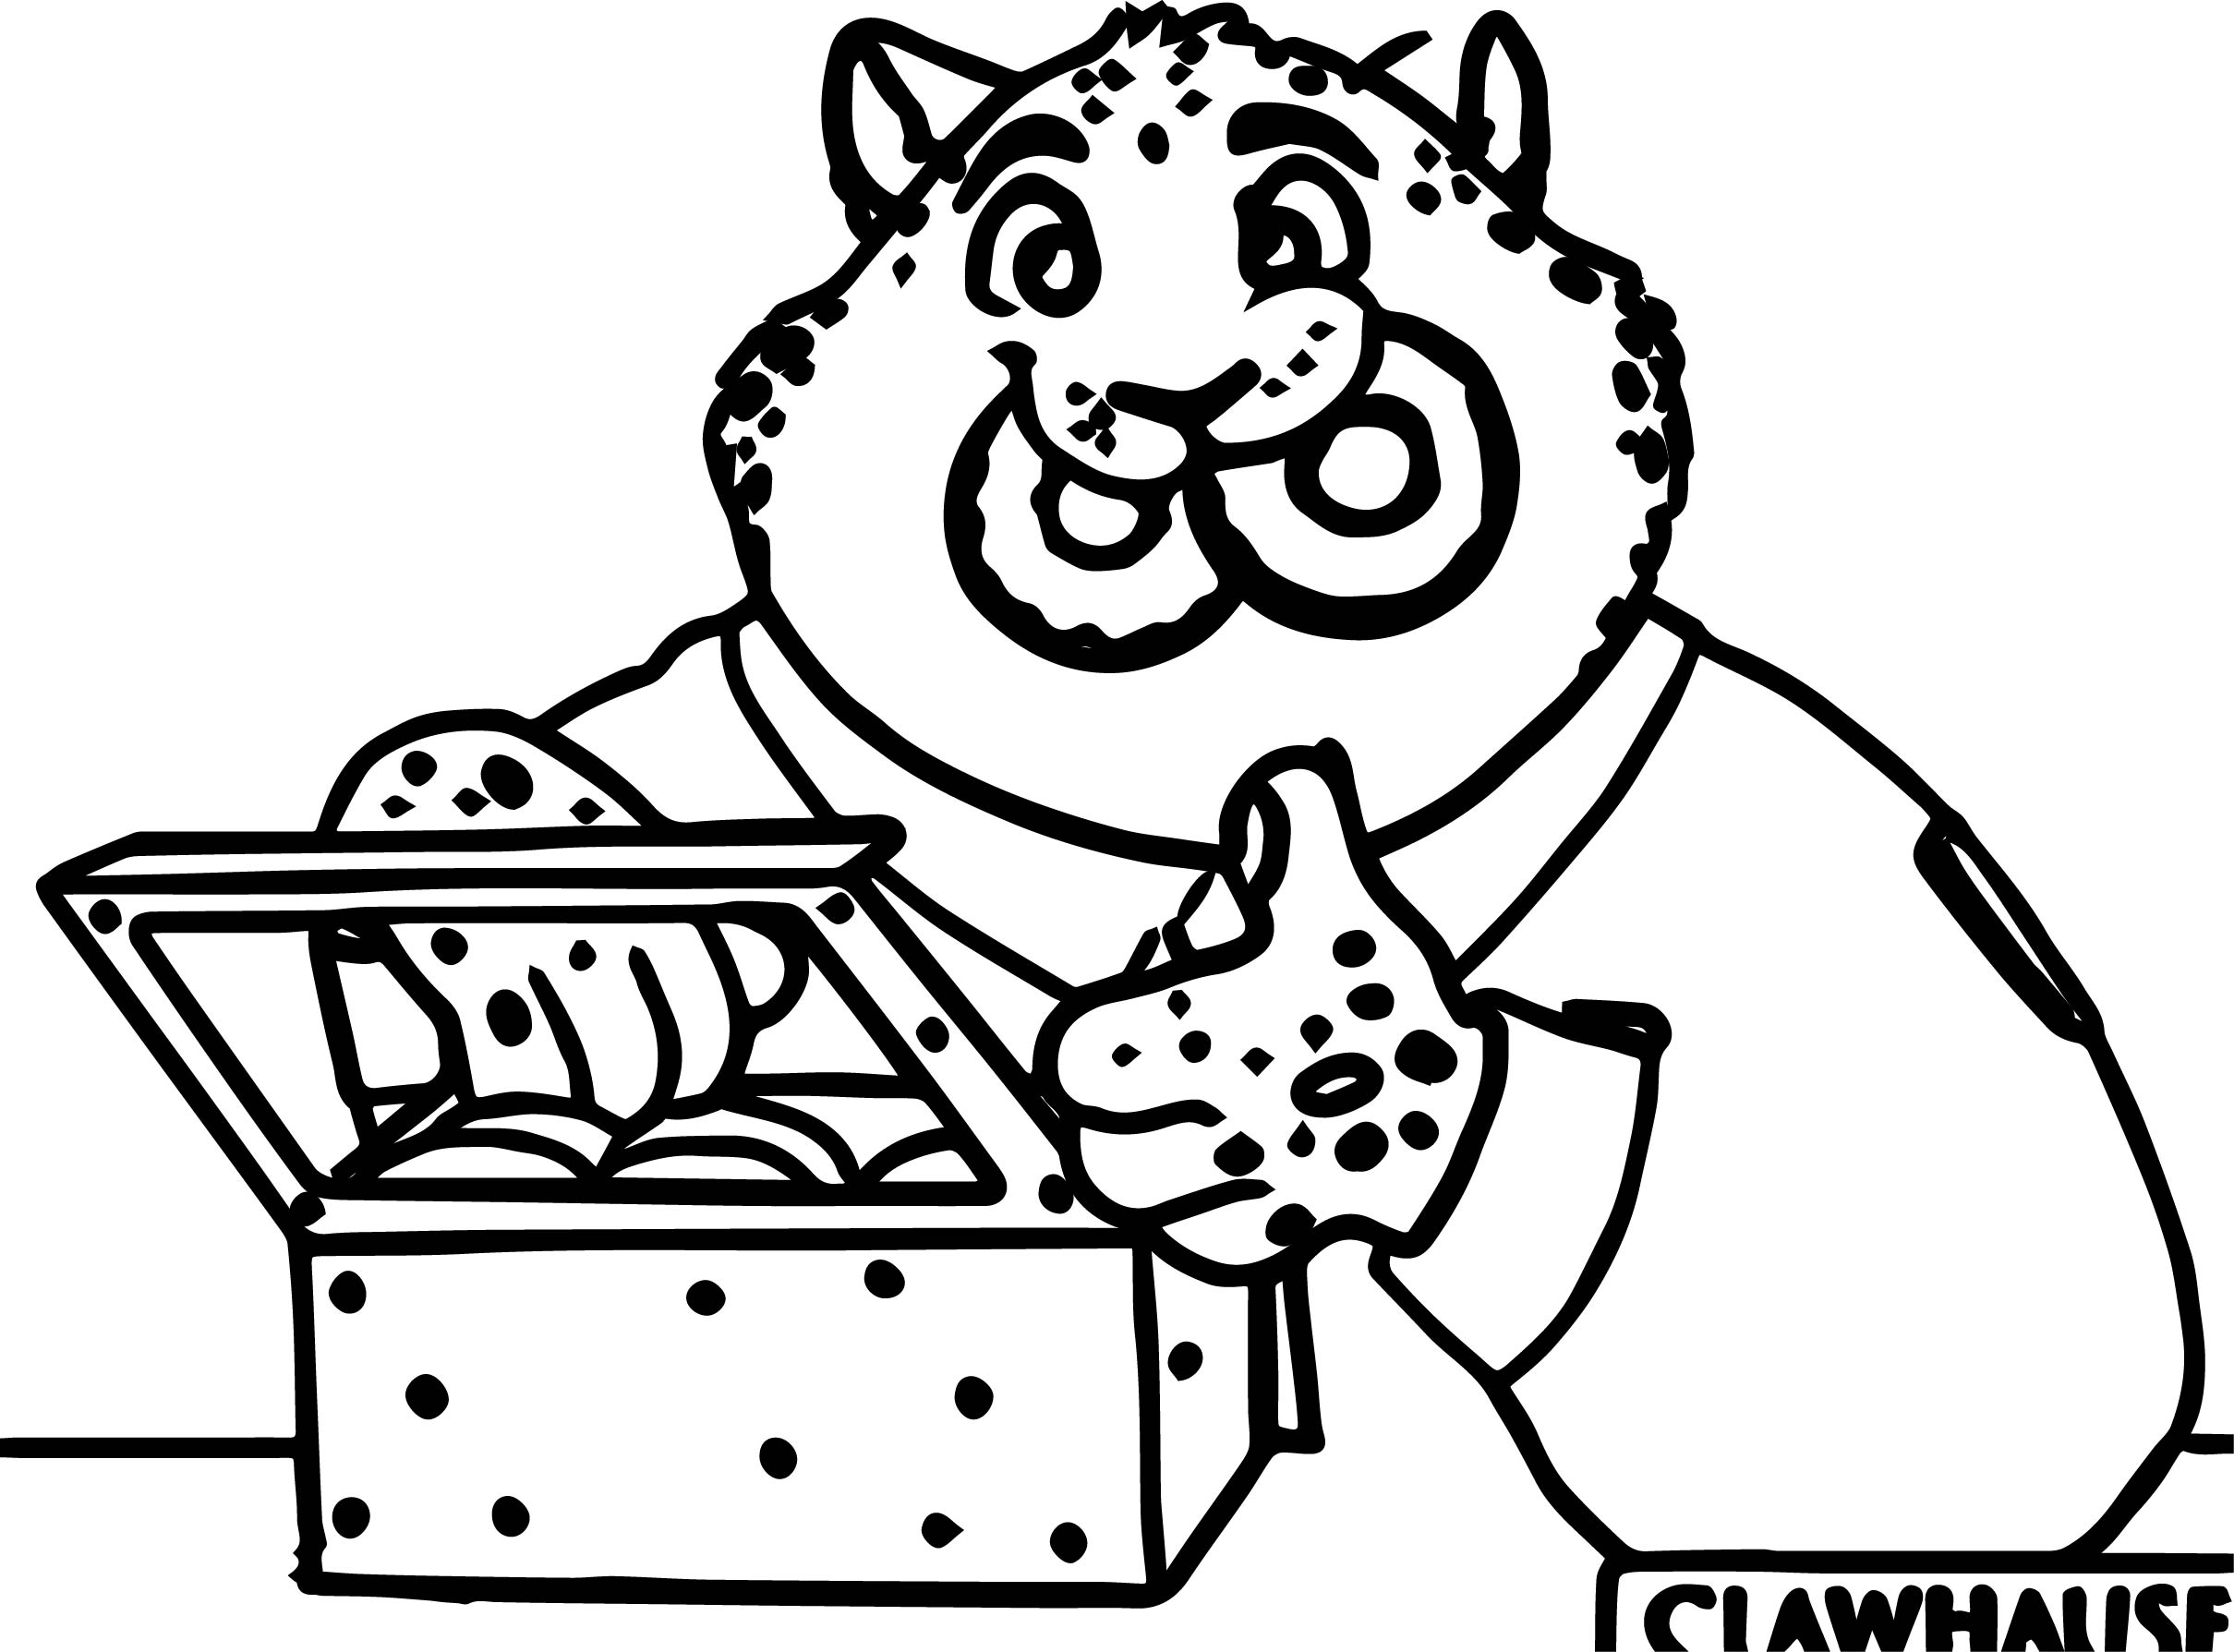 2419x1789 Zootopia Clawhauser Police Lion Coloring Page Wecoloringpage